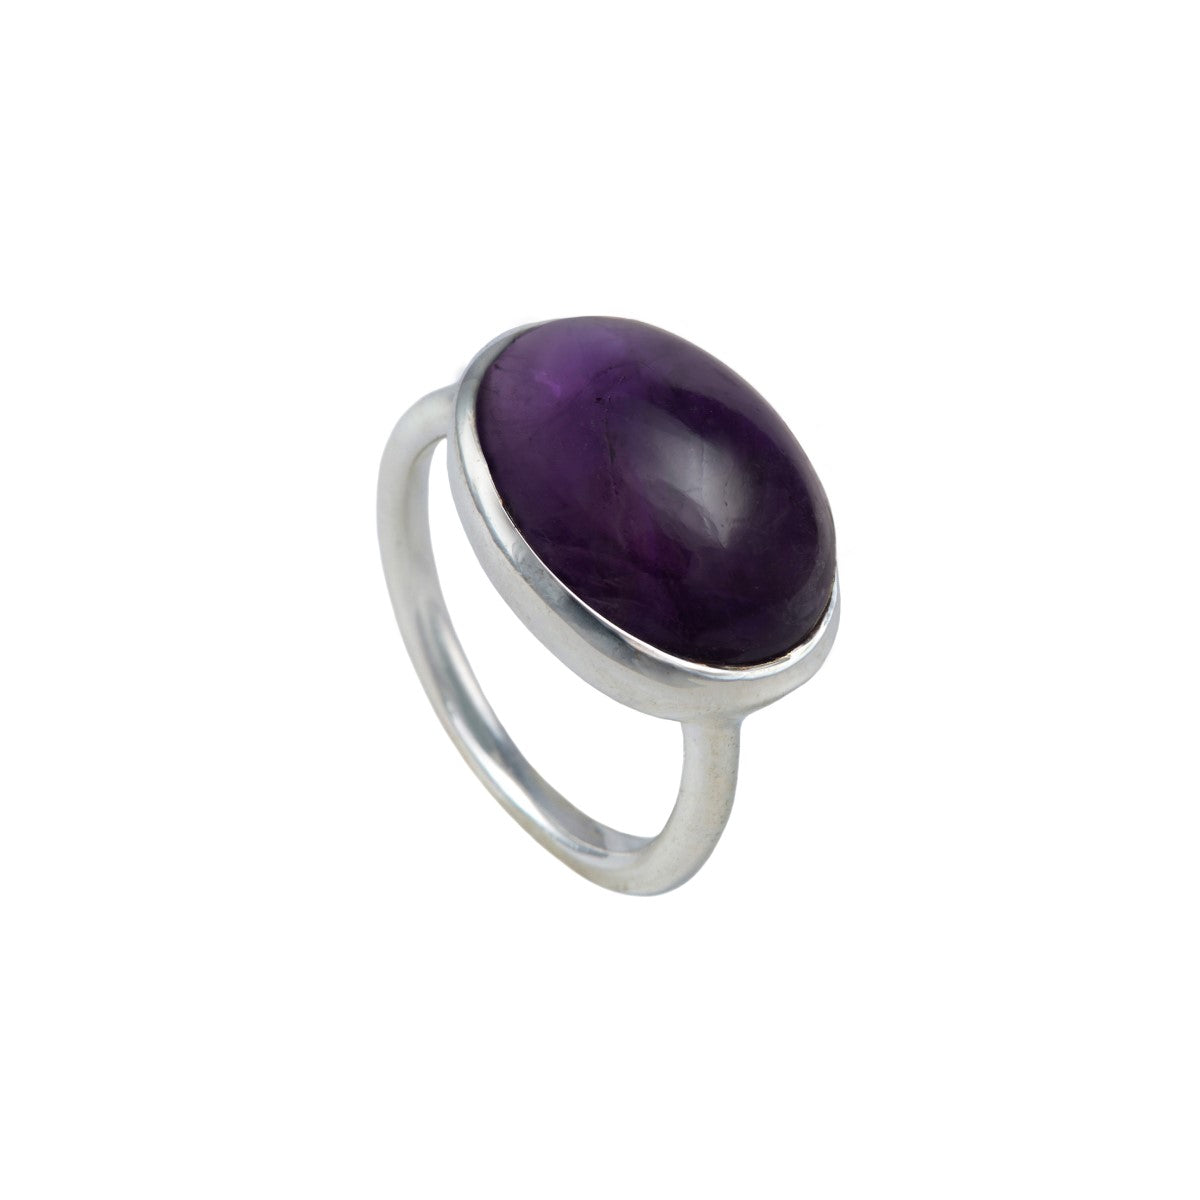 Cabochon Oval Cut Natural Gemstone Sterling Silver Ring - Amethyst